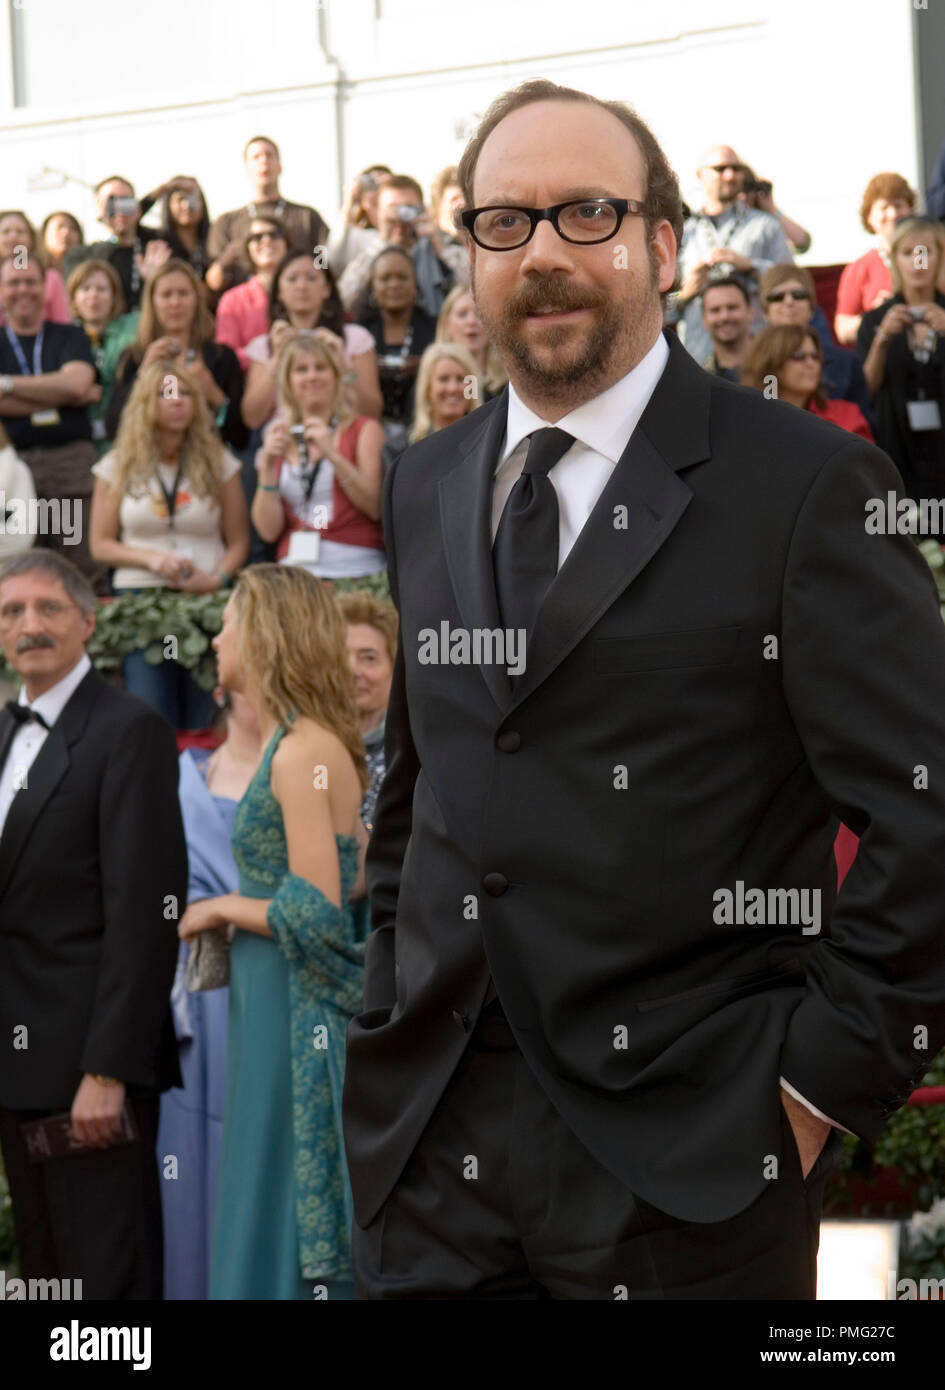 The Academy of Motion Picture Arts and Sciences Presents 'The 78th Annual Academy Awards'  Paul Giamatti 03-05-2006  © 2006 AMPAS  File Reference # 29998_001  For Editorial Use Only -  All Rights Reserved - Stock Image